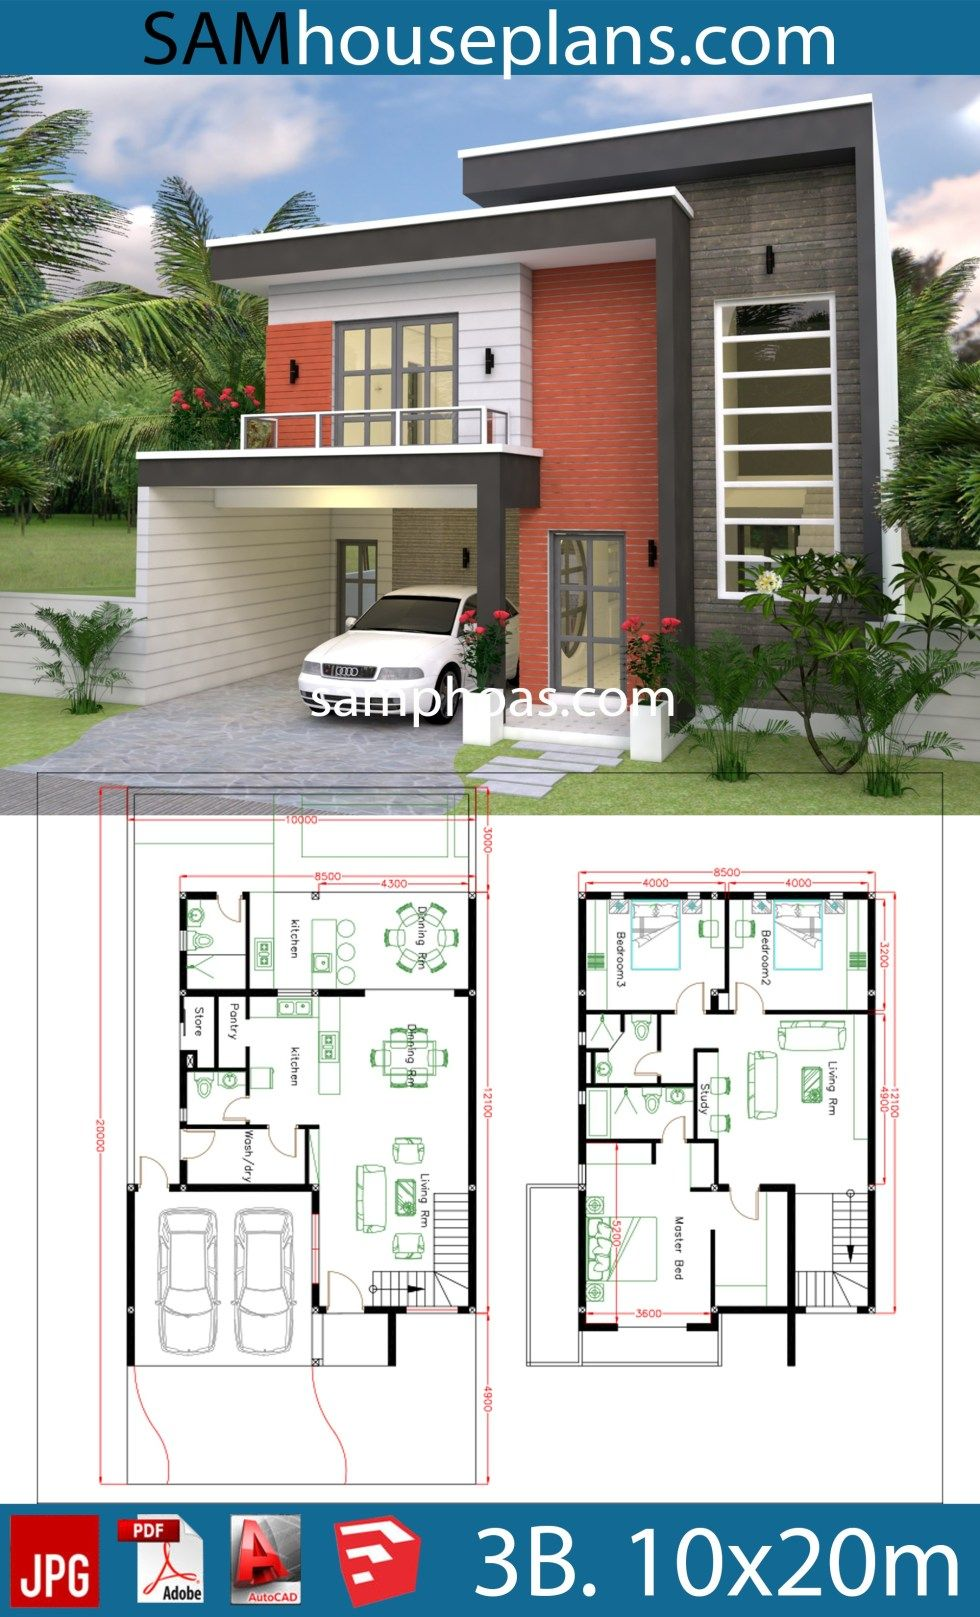 House Plans Plot 10x20m With 3 Bedrooms Sam House Plans Duplex House Design Duplex House Plans House Layouts